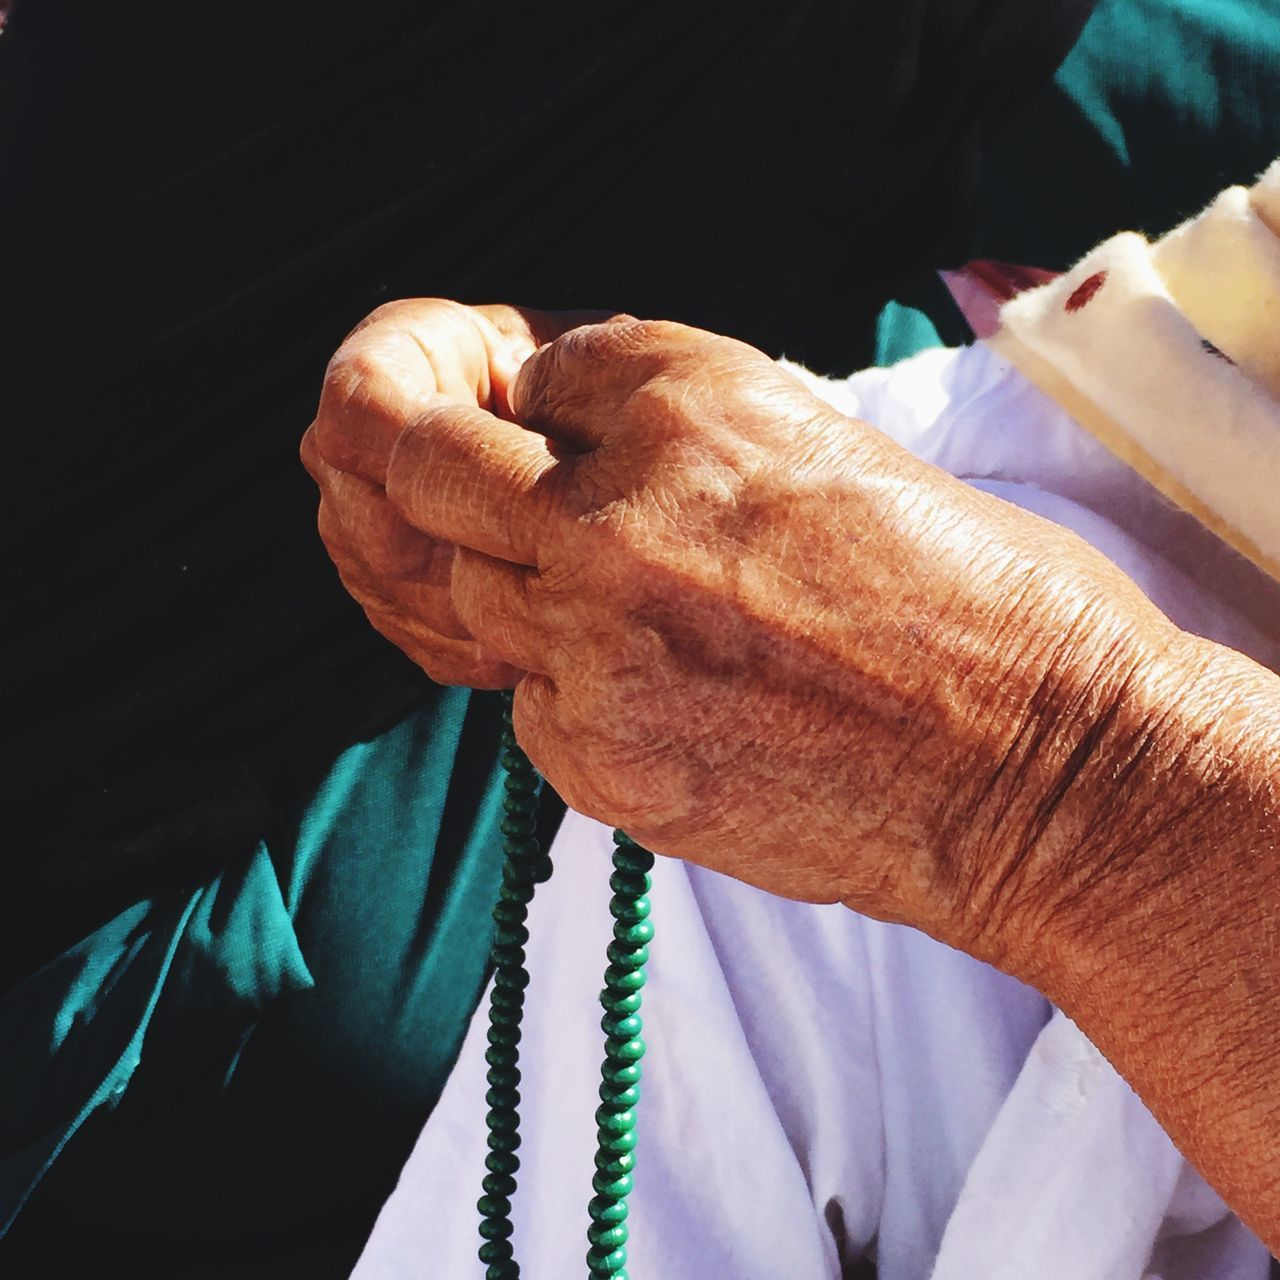 human hand, senior adult, wrinkled, human body part, senior women, real people, one person, close-up, holding, indoors, day, people